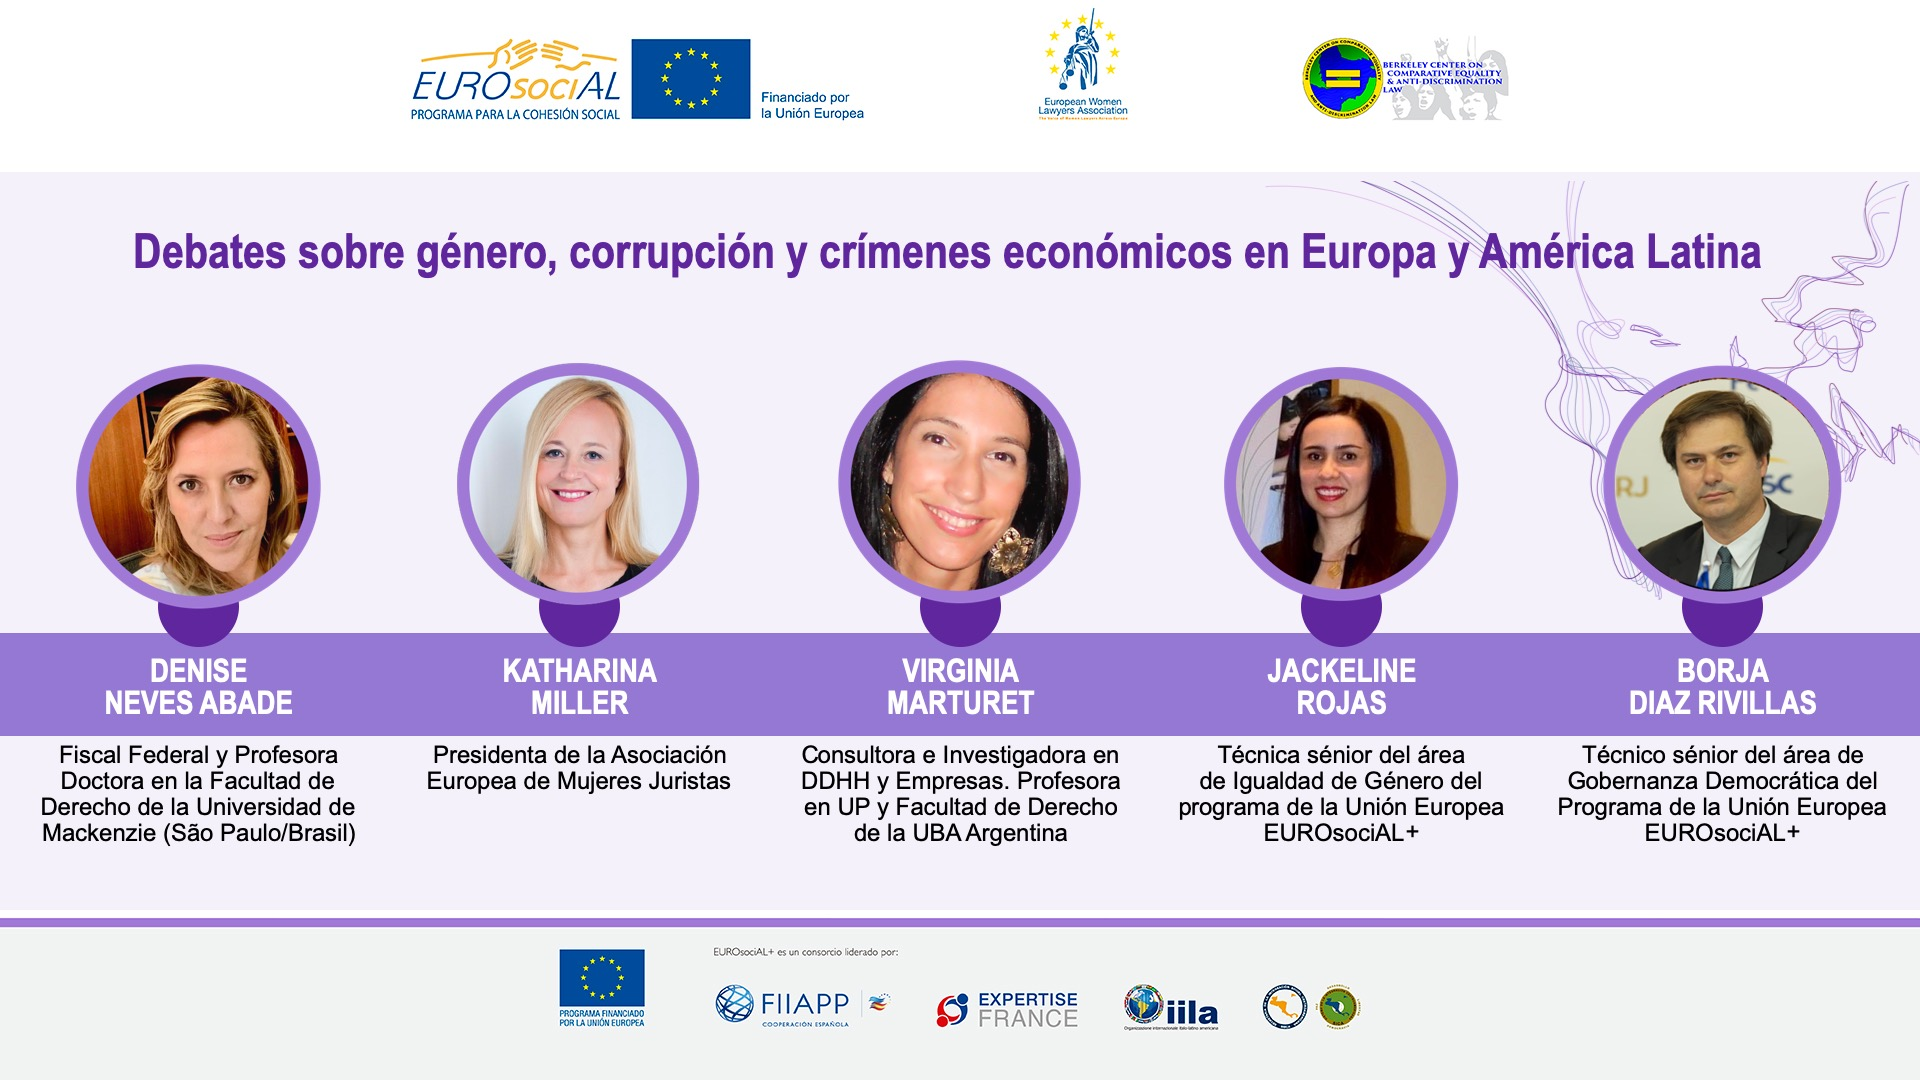 Strengthening strategies to include the gender perspective in public policies for the prevention of corruption and economic crimes